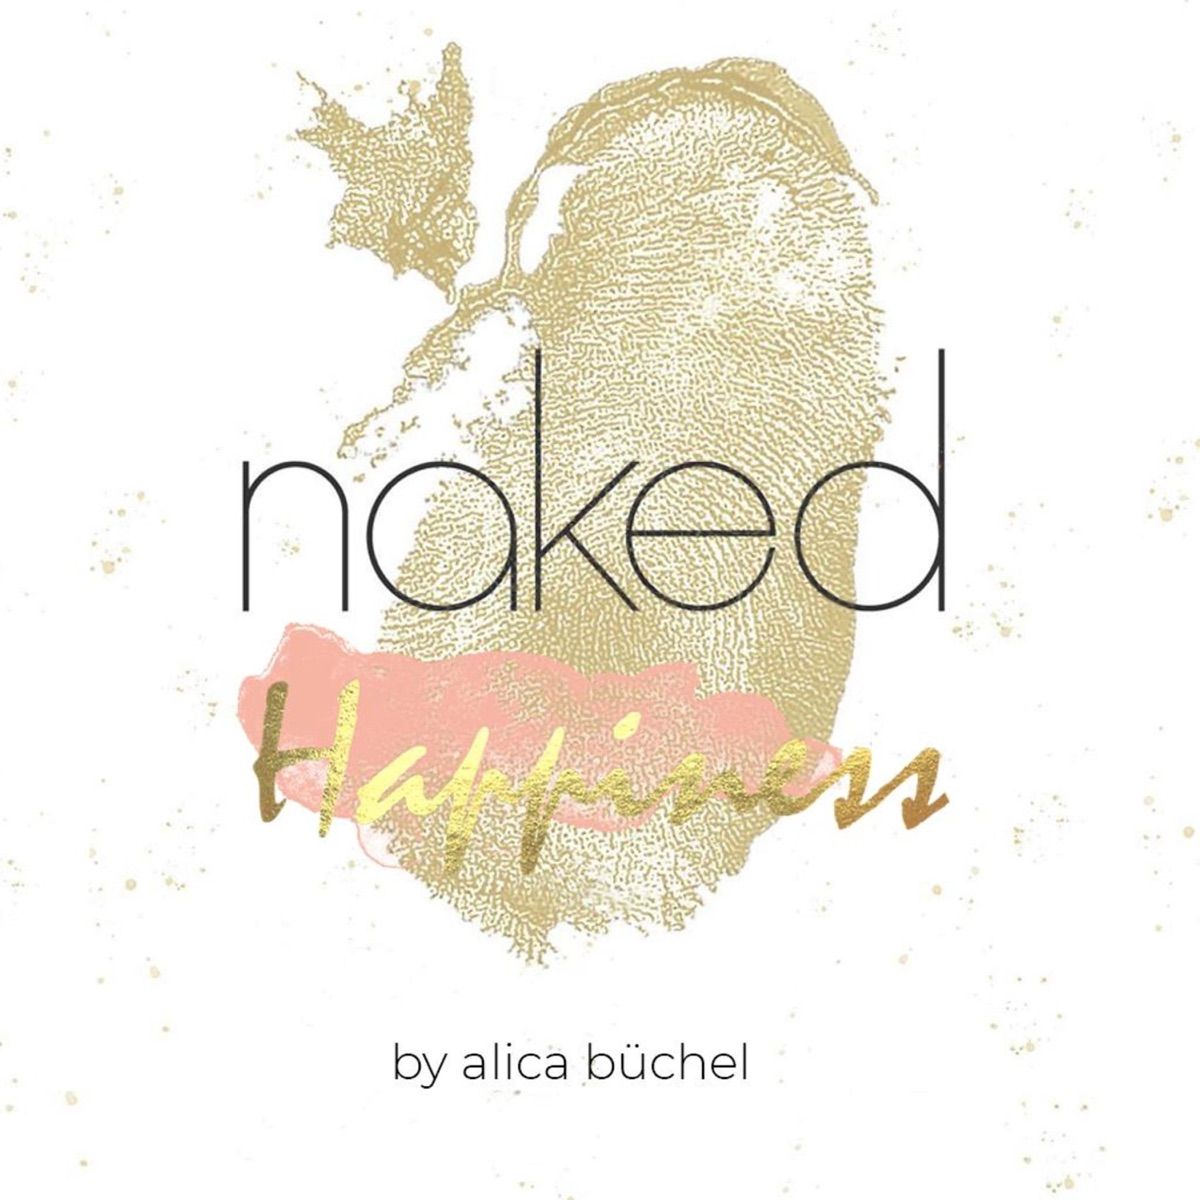 NAKED with Alica Büchel